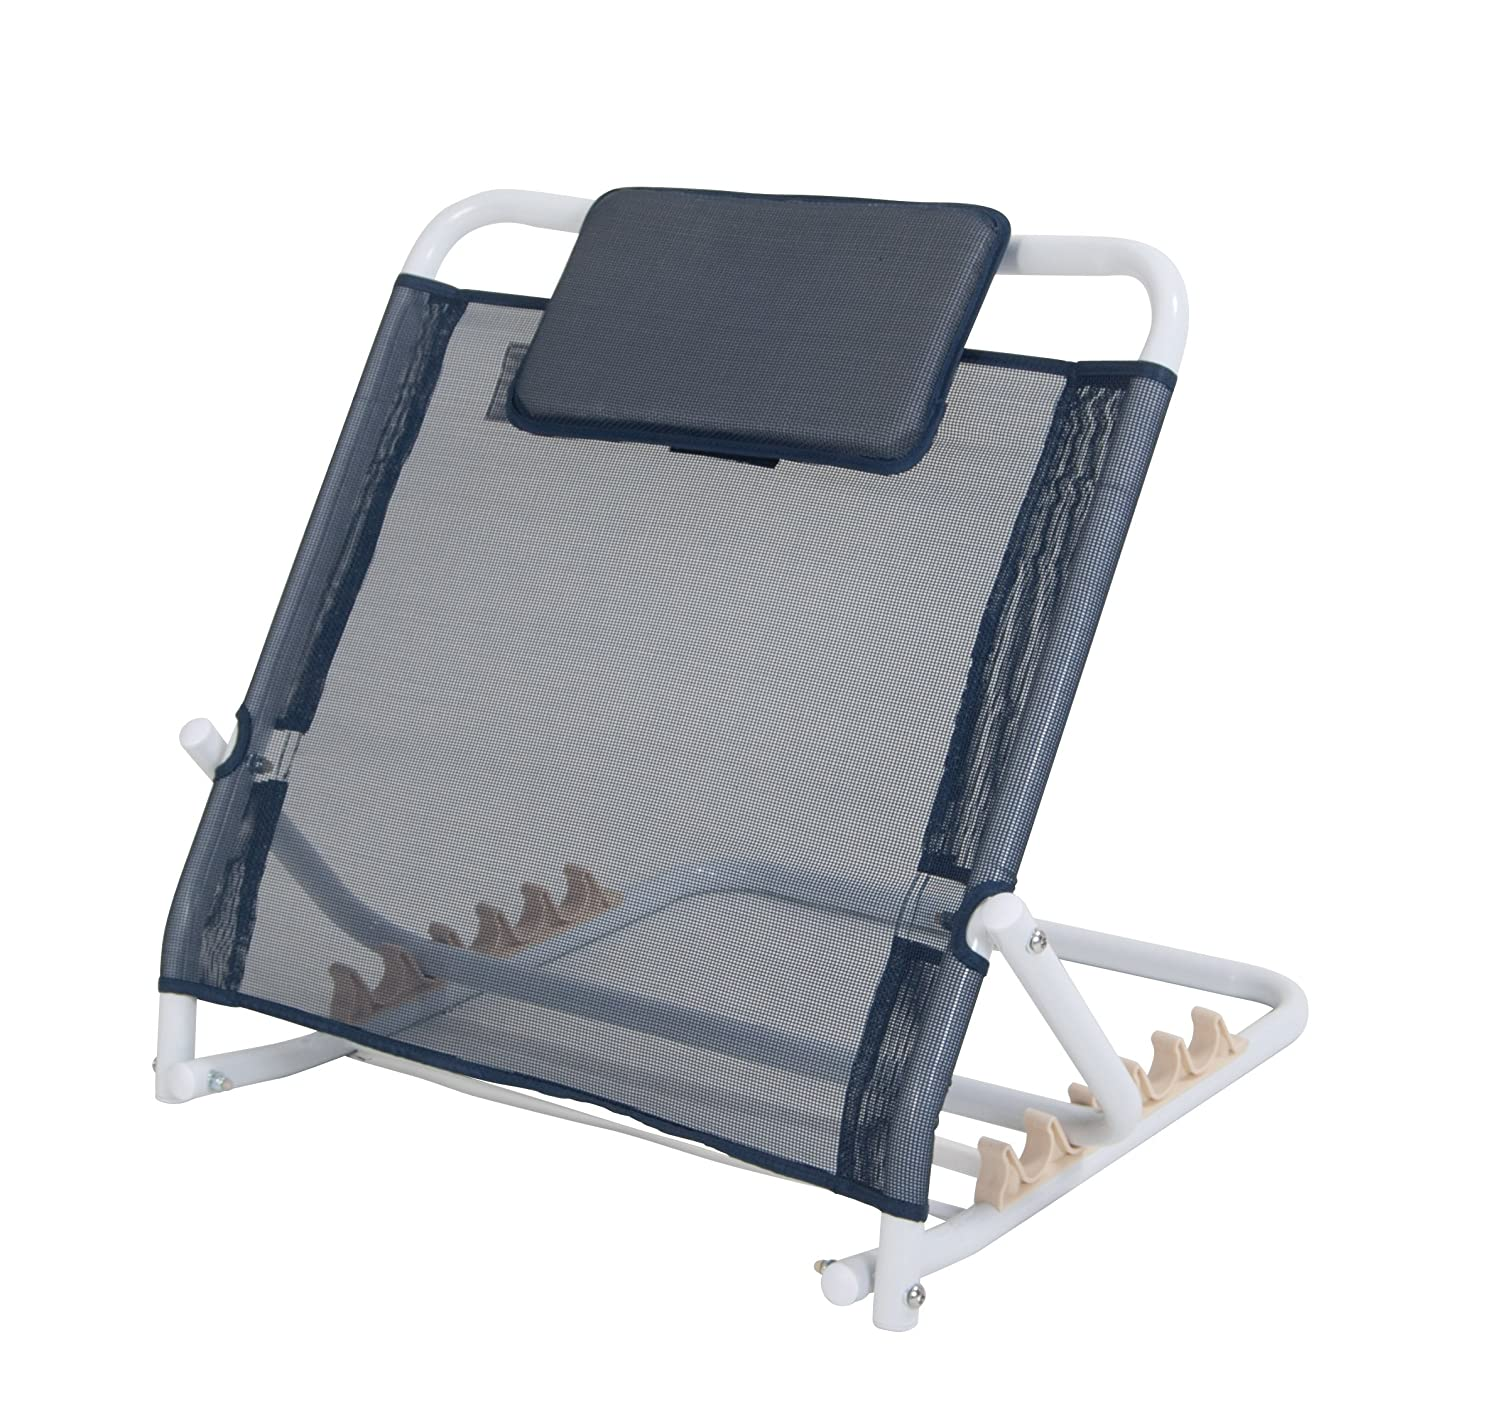 sc 1 st  Amazon.com & Amazon.com: Drive Medical Adjustable Back Rest: Health u0026 Personal Care islam-shia.org